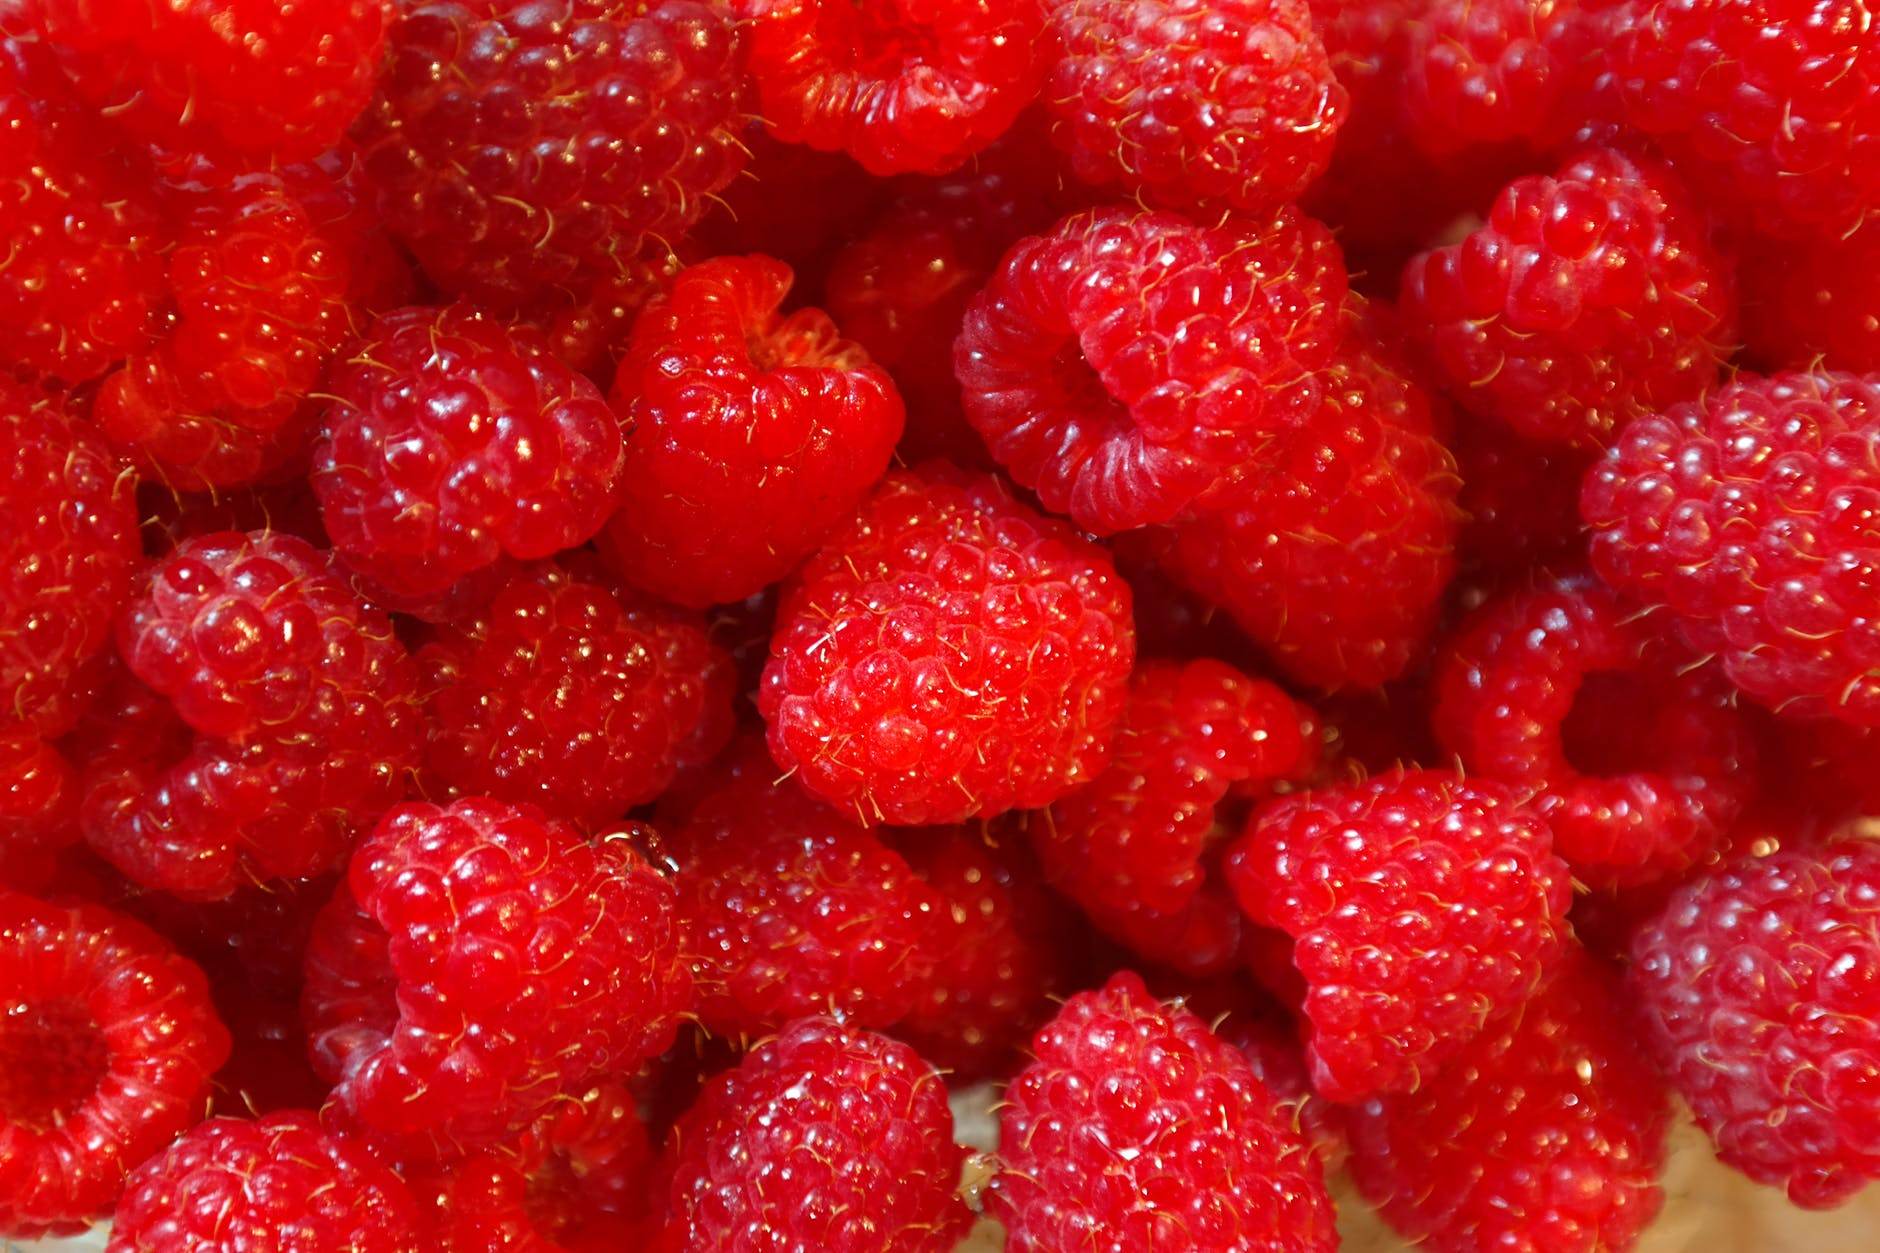 healthy red fruits raspberries